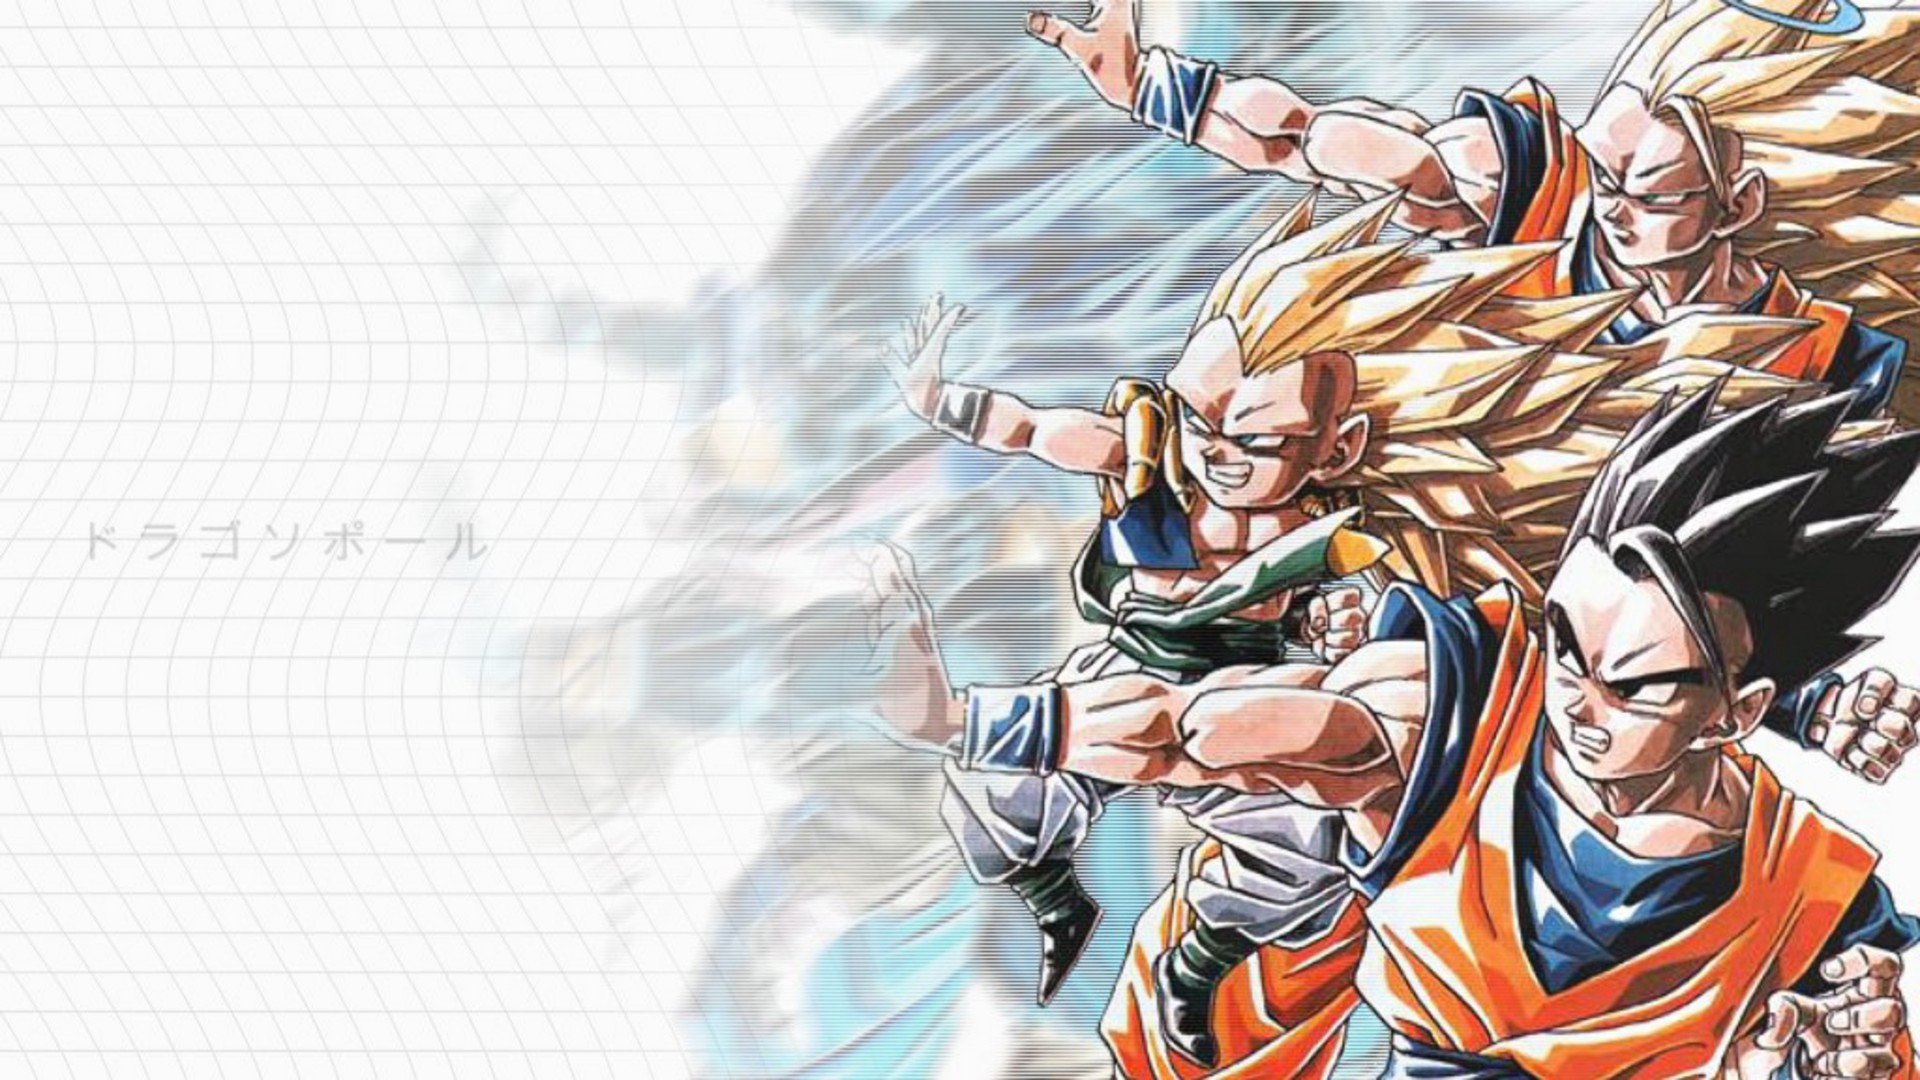 Dragon Ball Wallpaper 1920x1080 Dragon Ball Z 1920x1080